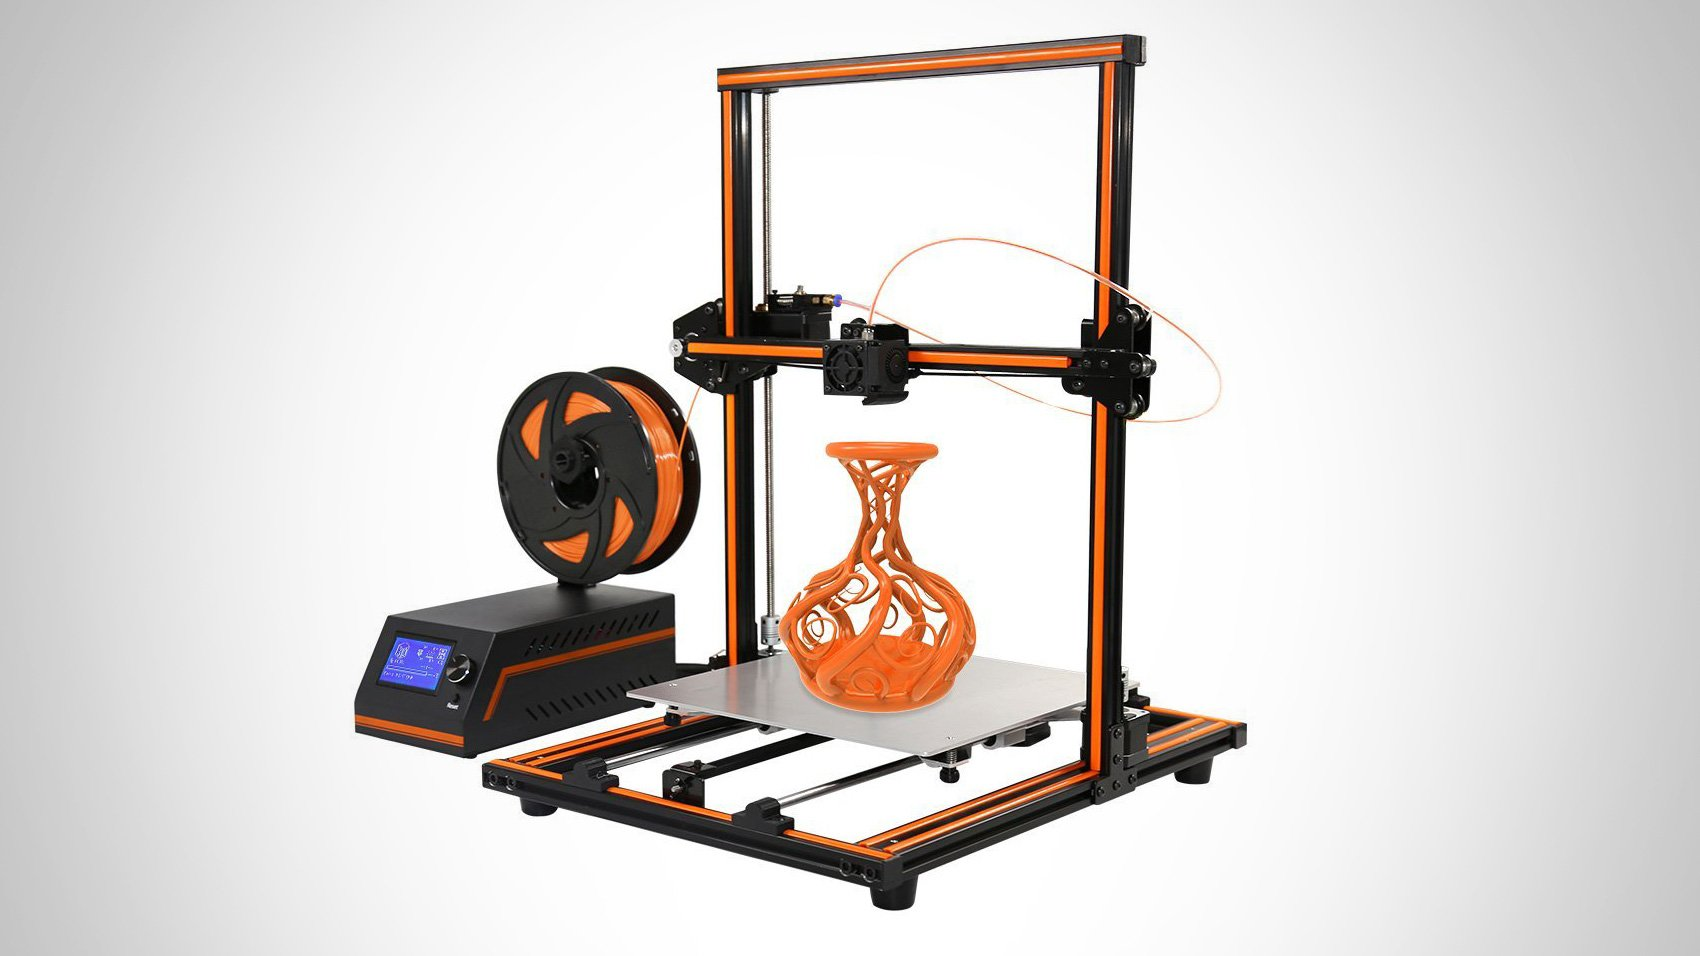 Anet E12 3D Printer: Review the Specs | All3DP